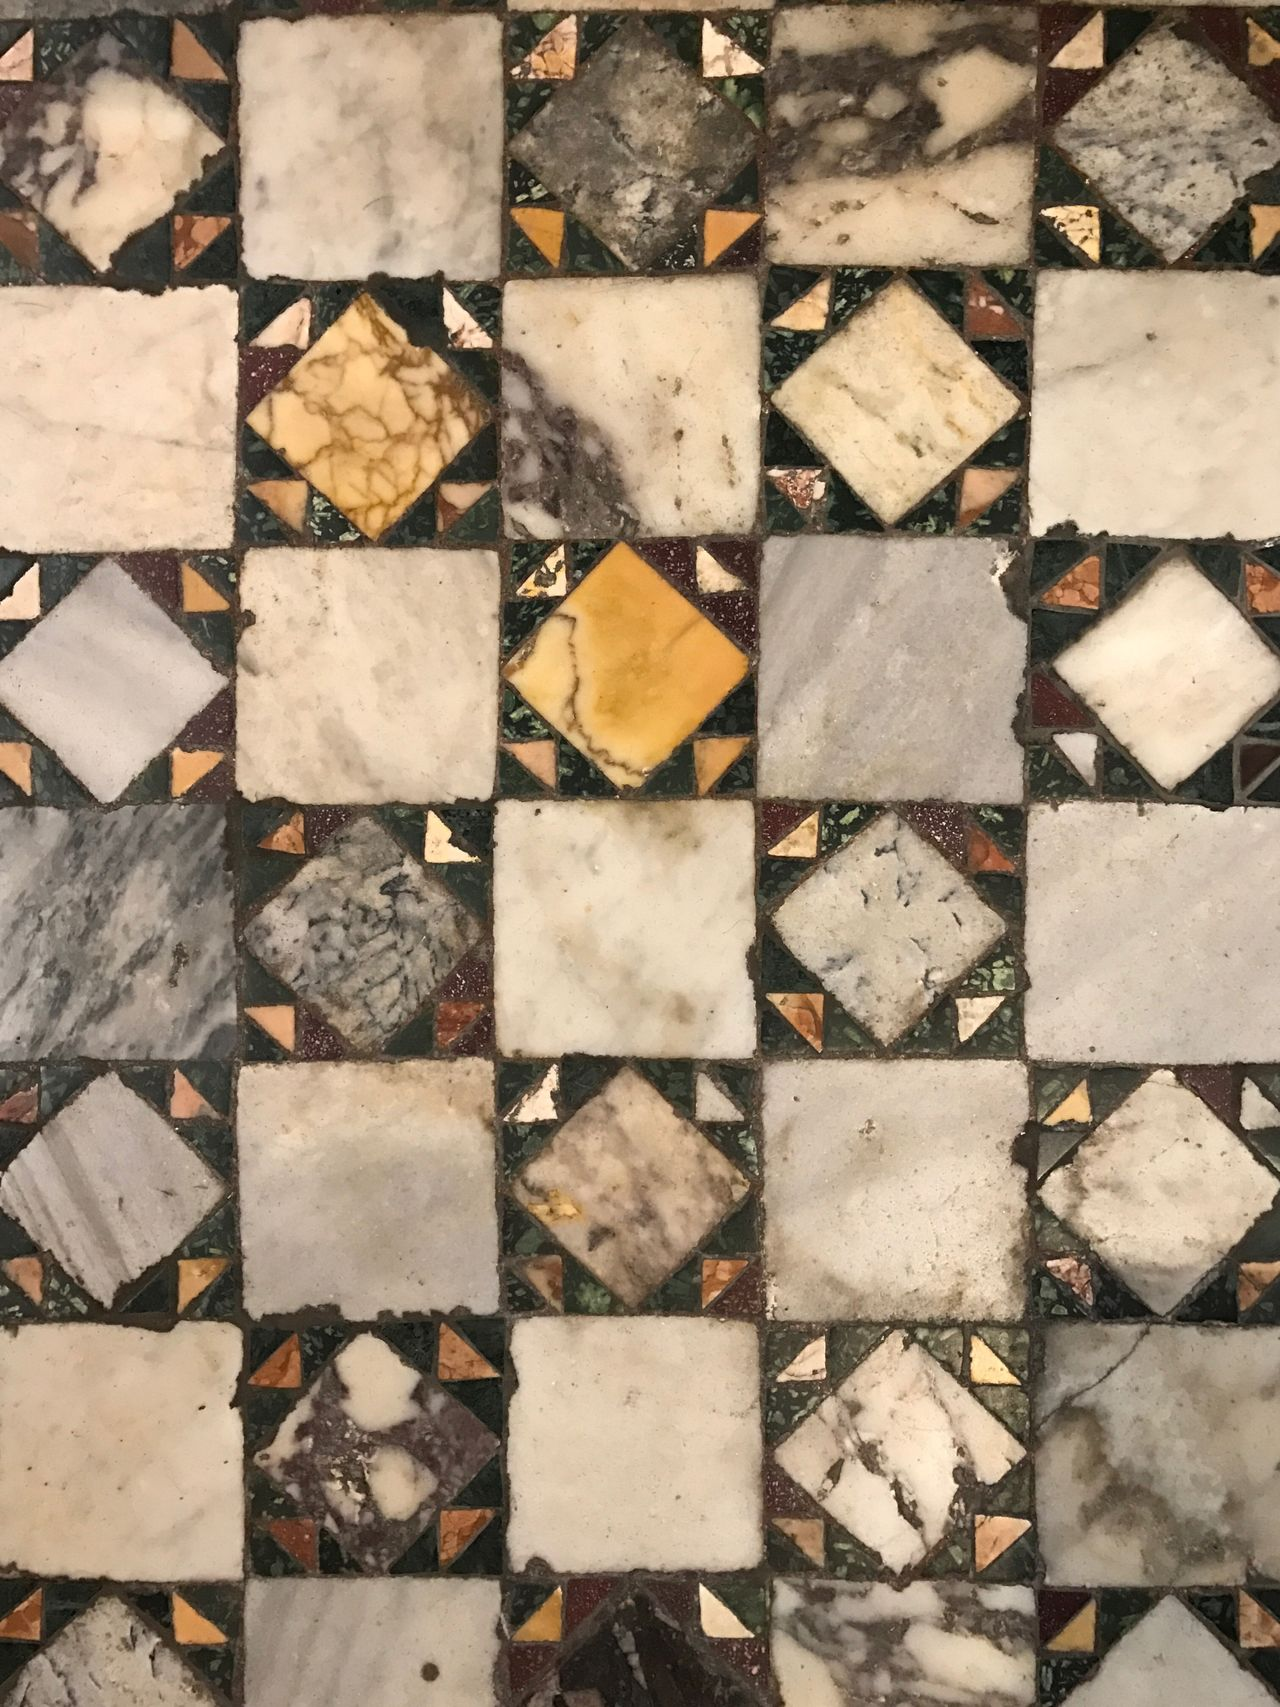 Floor Tiles Tiled Floor Full Frame Backgrounds Textured  No People Large Group Of Objects Marble Marble Floors